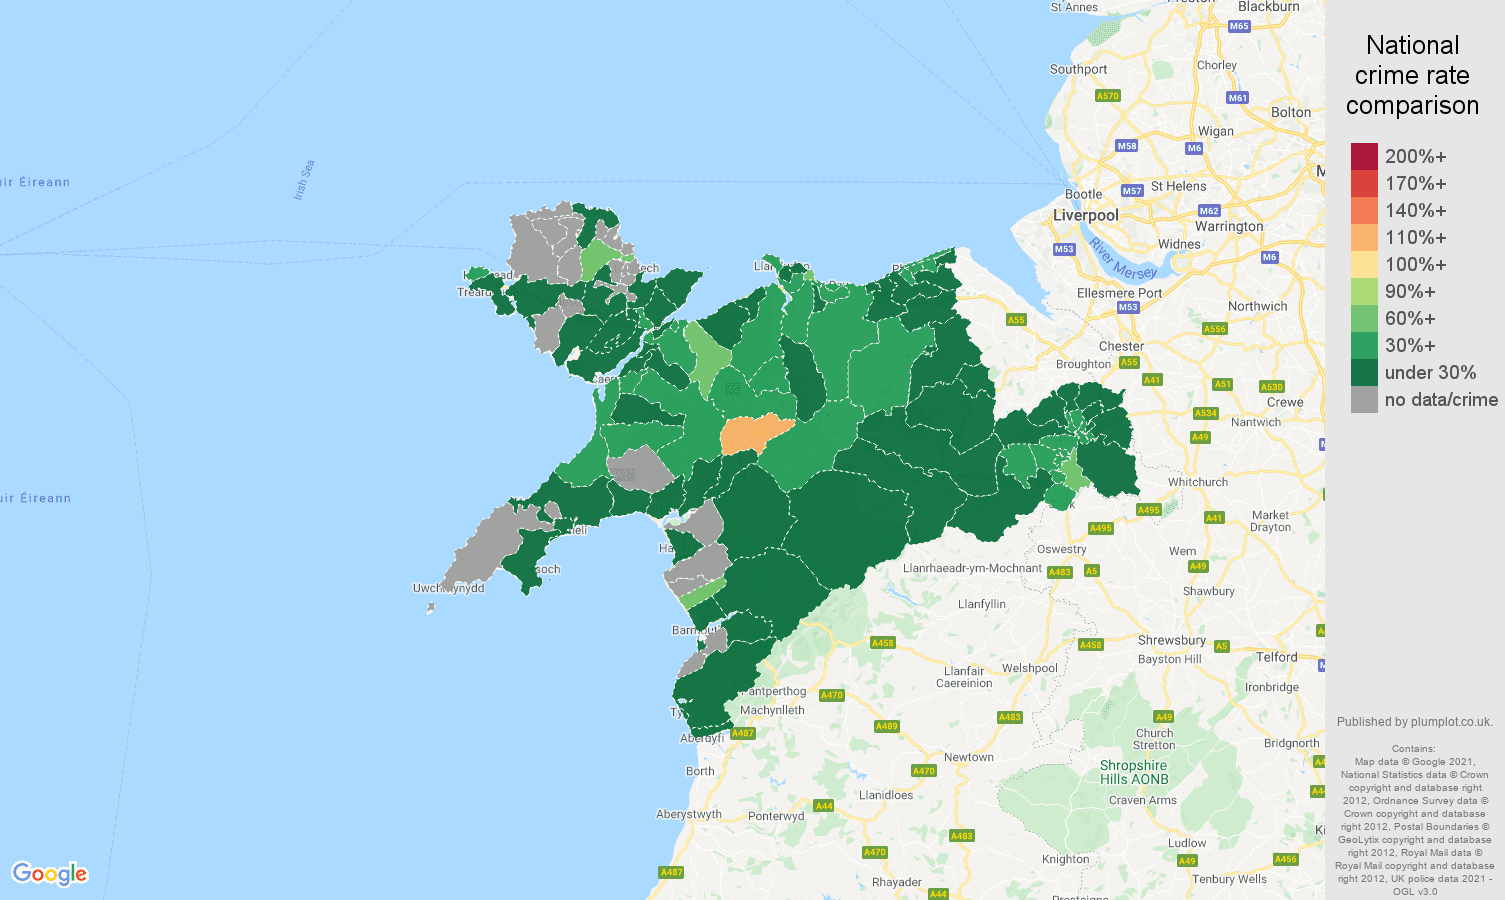 Llandudno vehicle crime rate comparison map